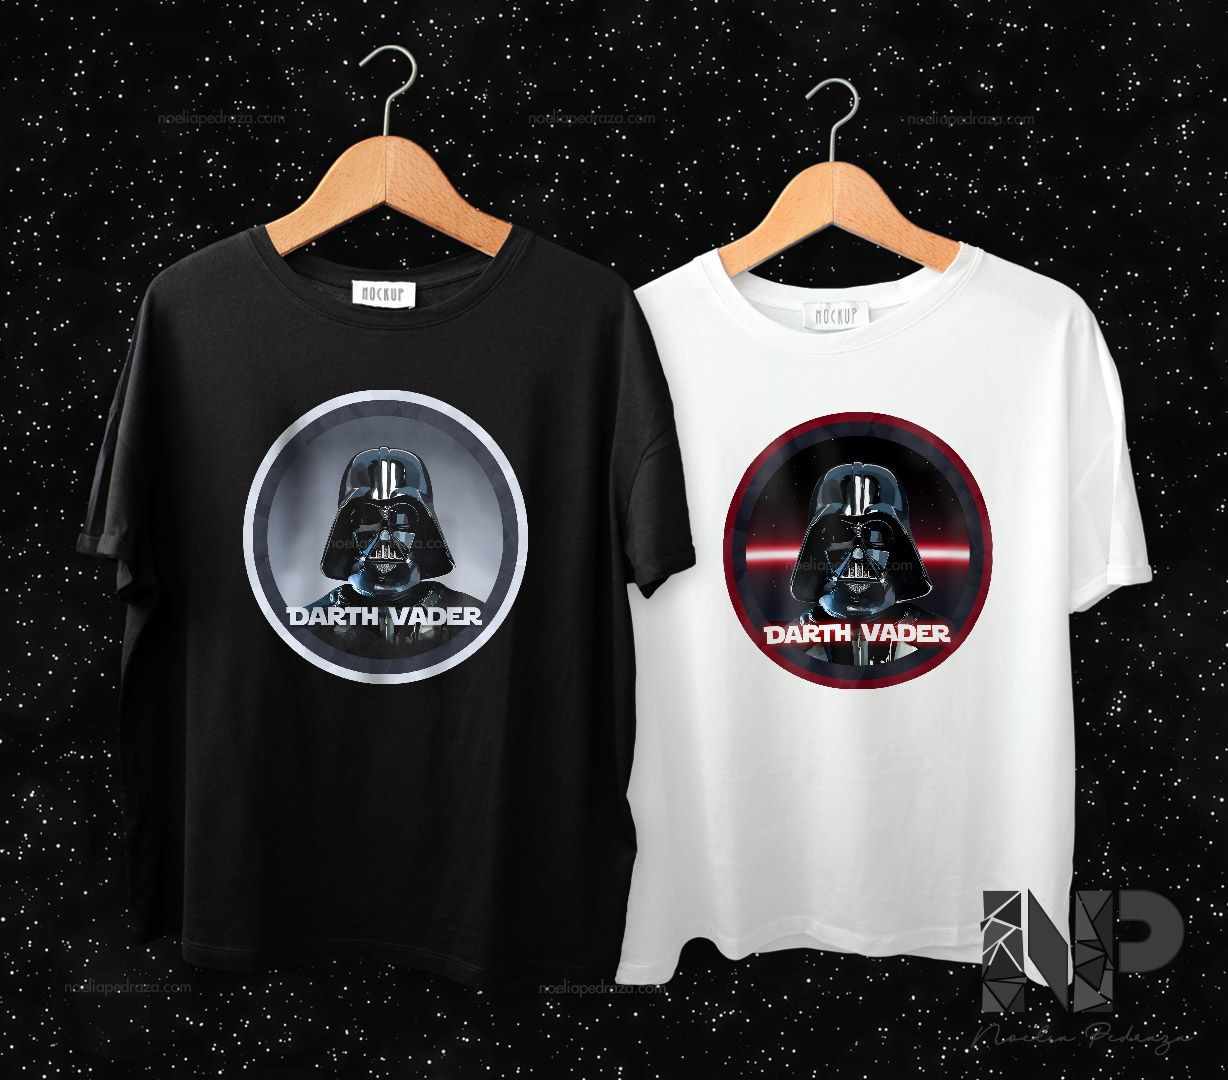 Ropa personalizada de Darth Vader - Star Wars